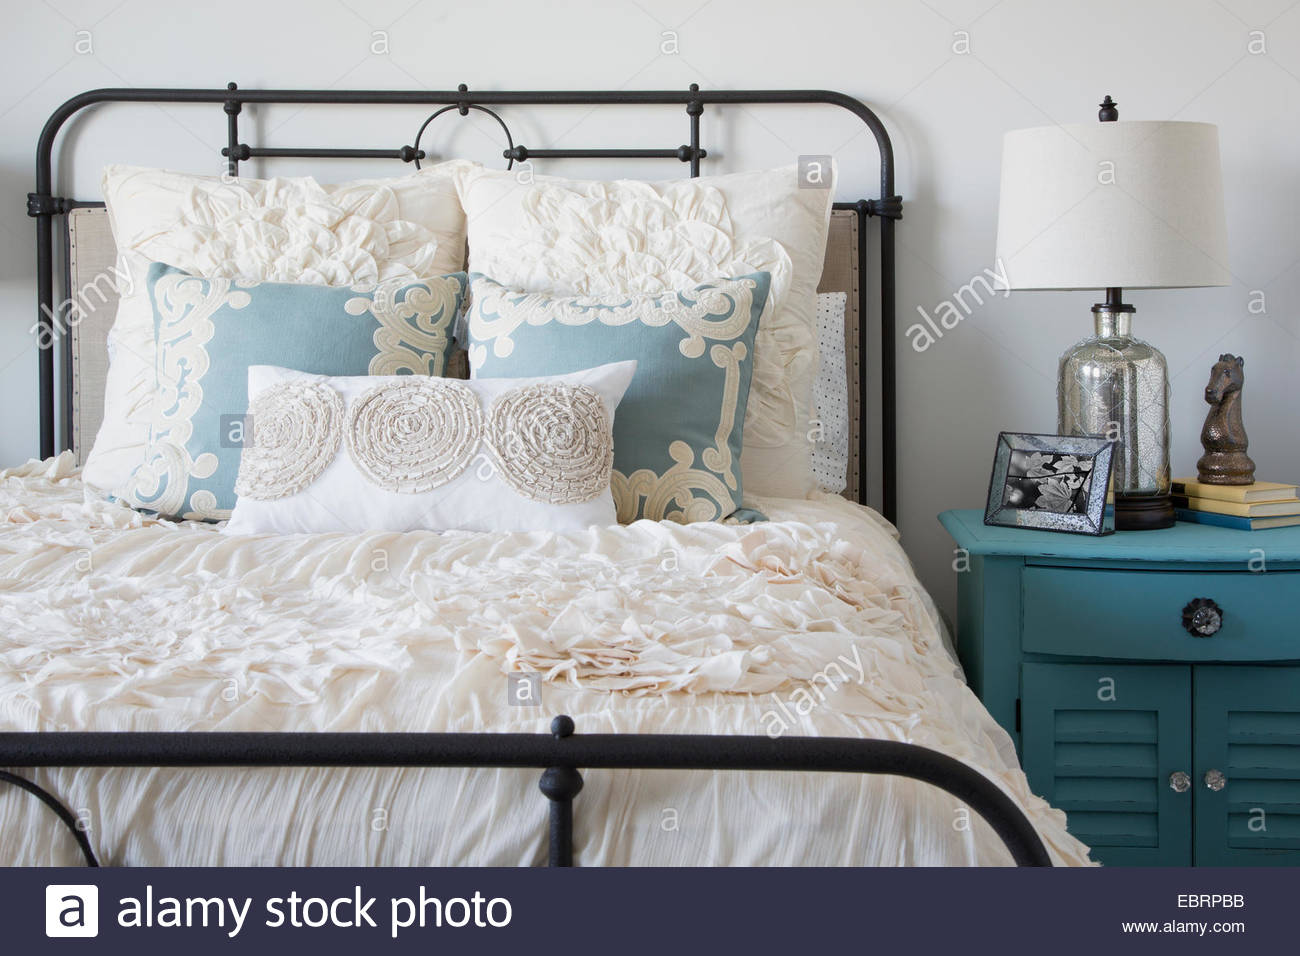 elegante schlafzimmer stockfoto bild 76125151 alamy. Black Bedroom Furniture Sets. Home Design Ideas